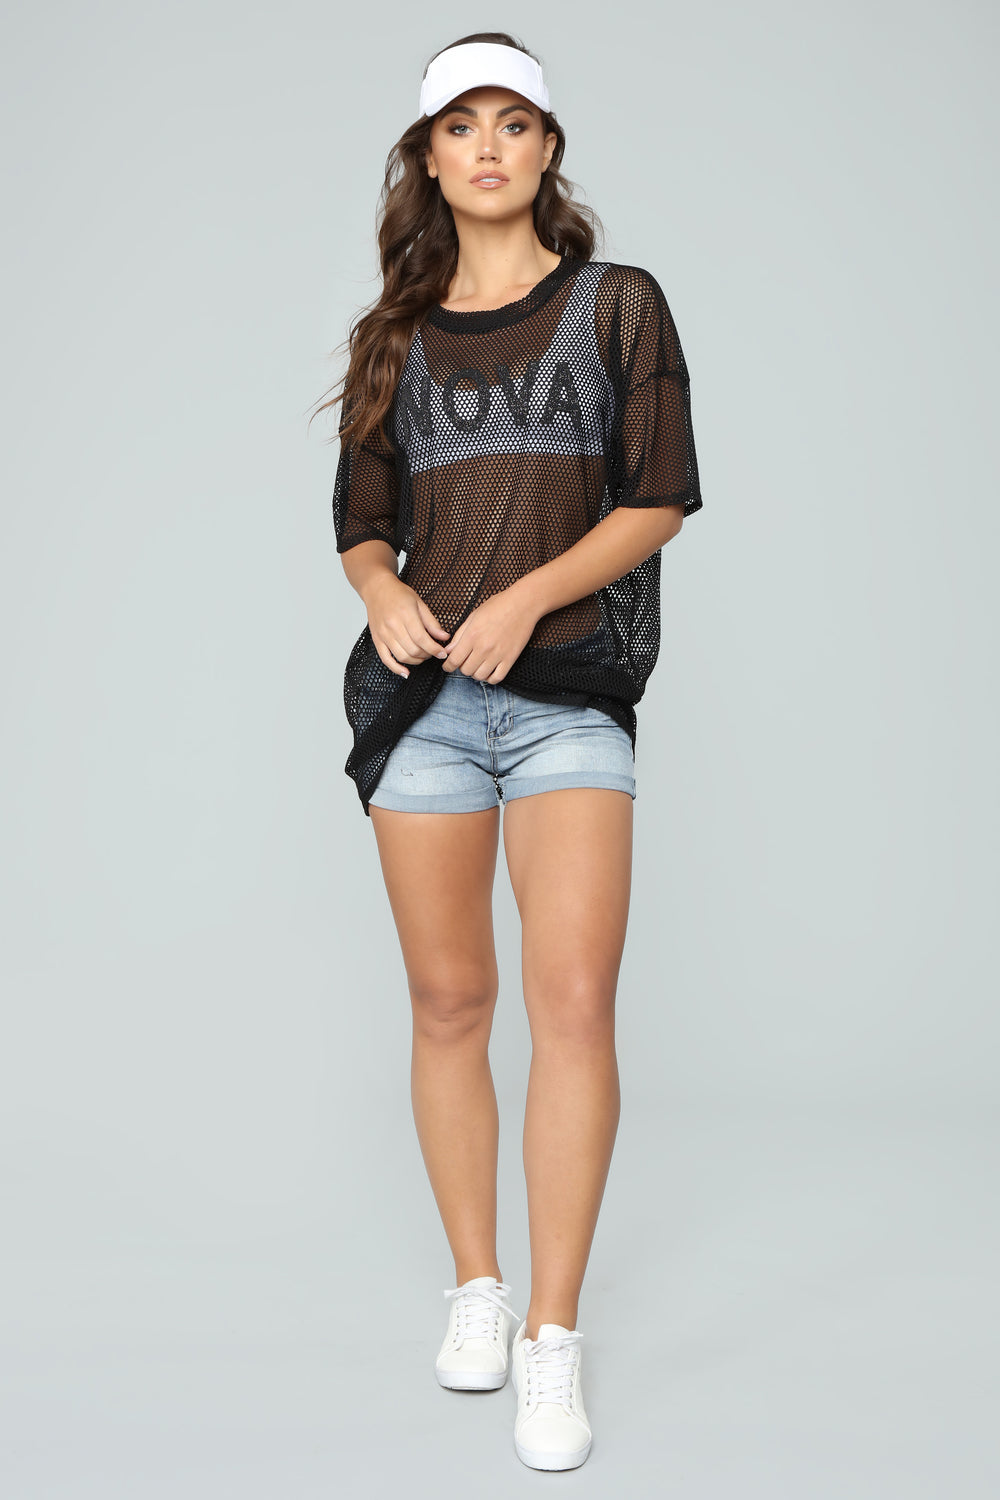 Dripping In Nova Cover Up Dress - Black